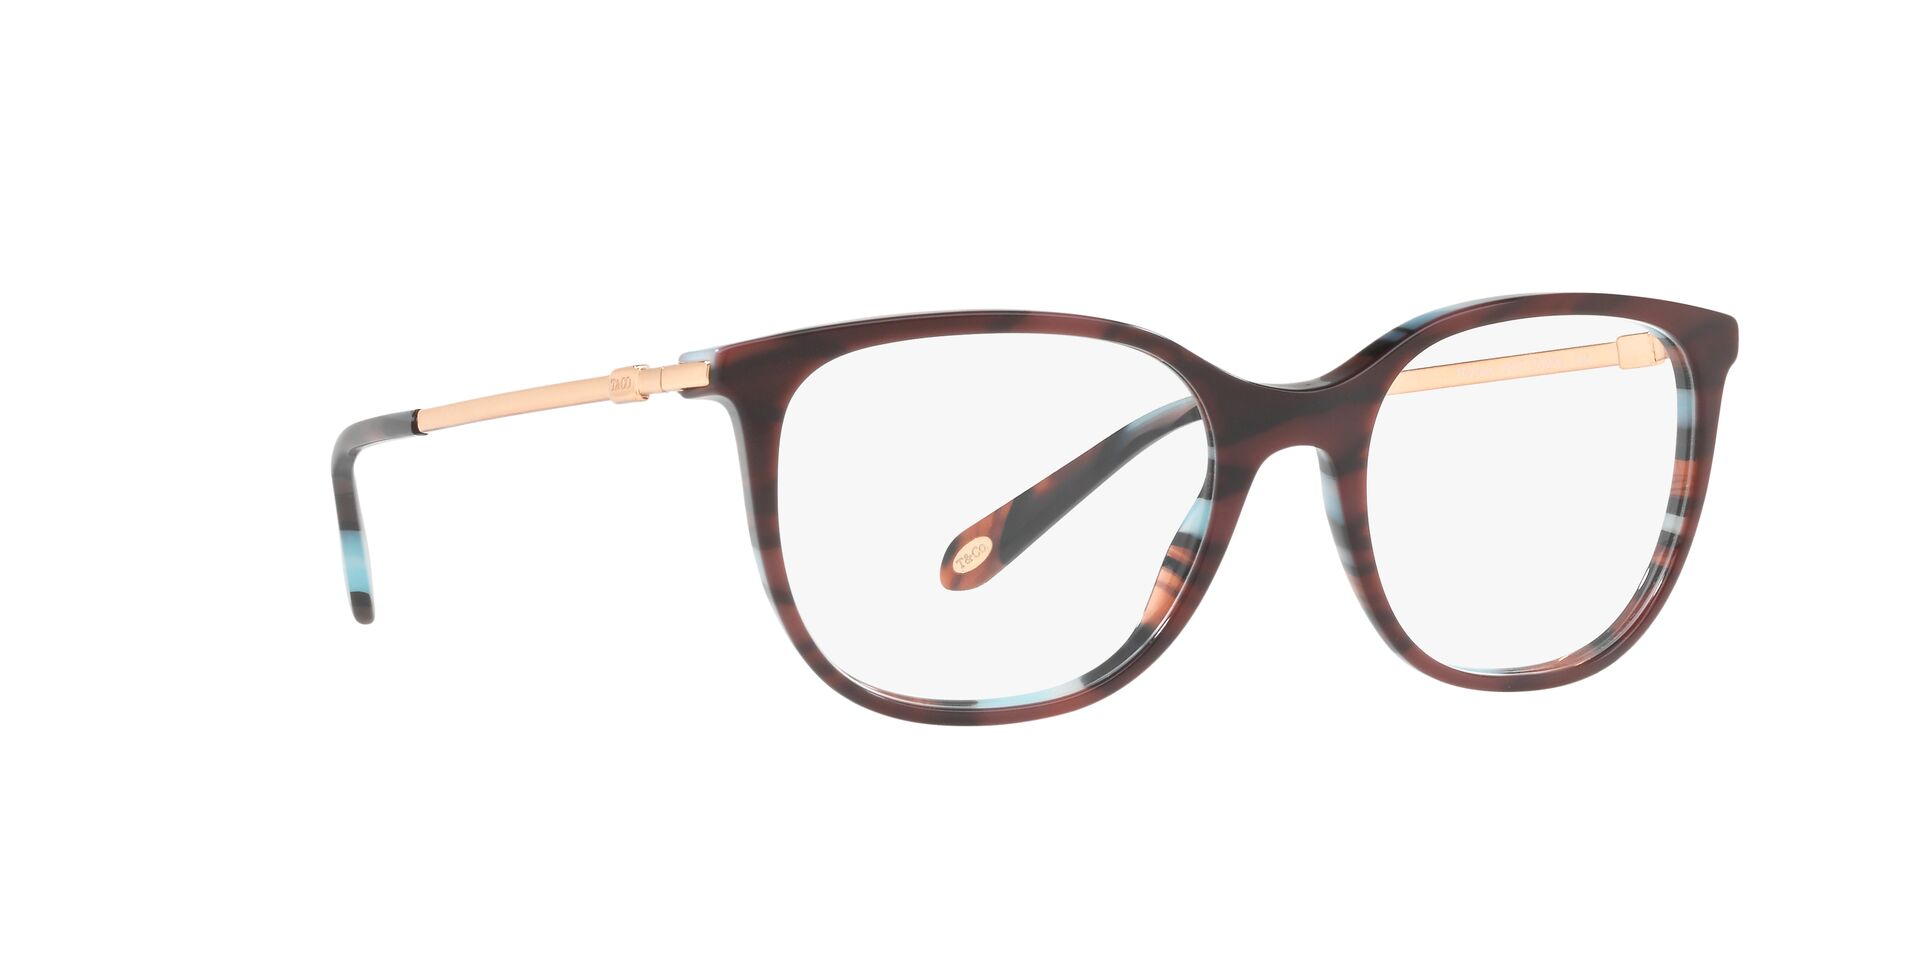 Tiffany TF2149 Brown / Clear Lens Eyeglasses-Eyeglasses-Designer Eyes